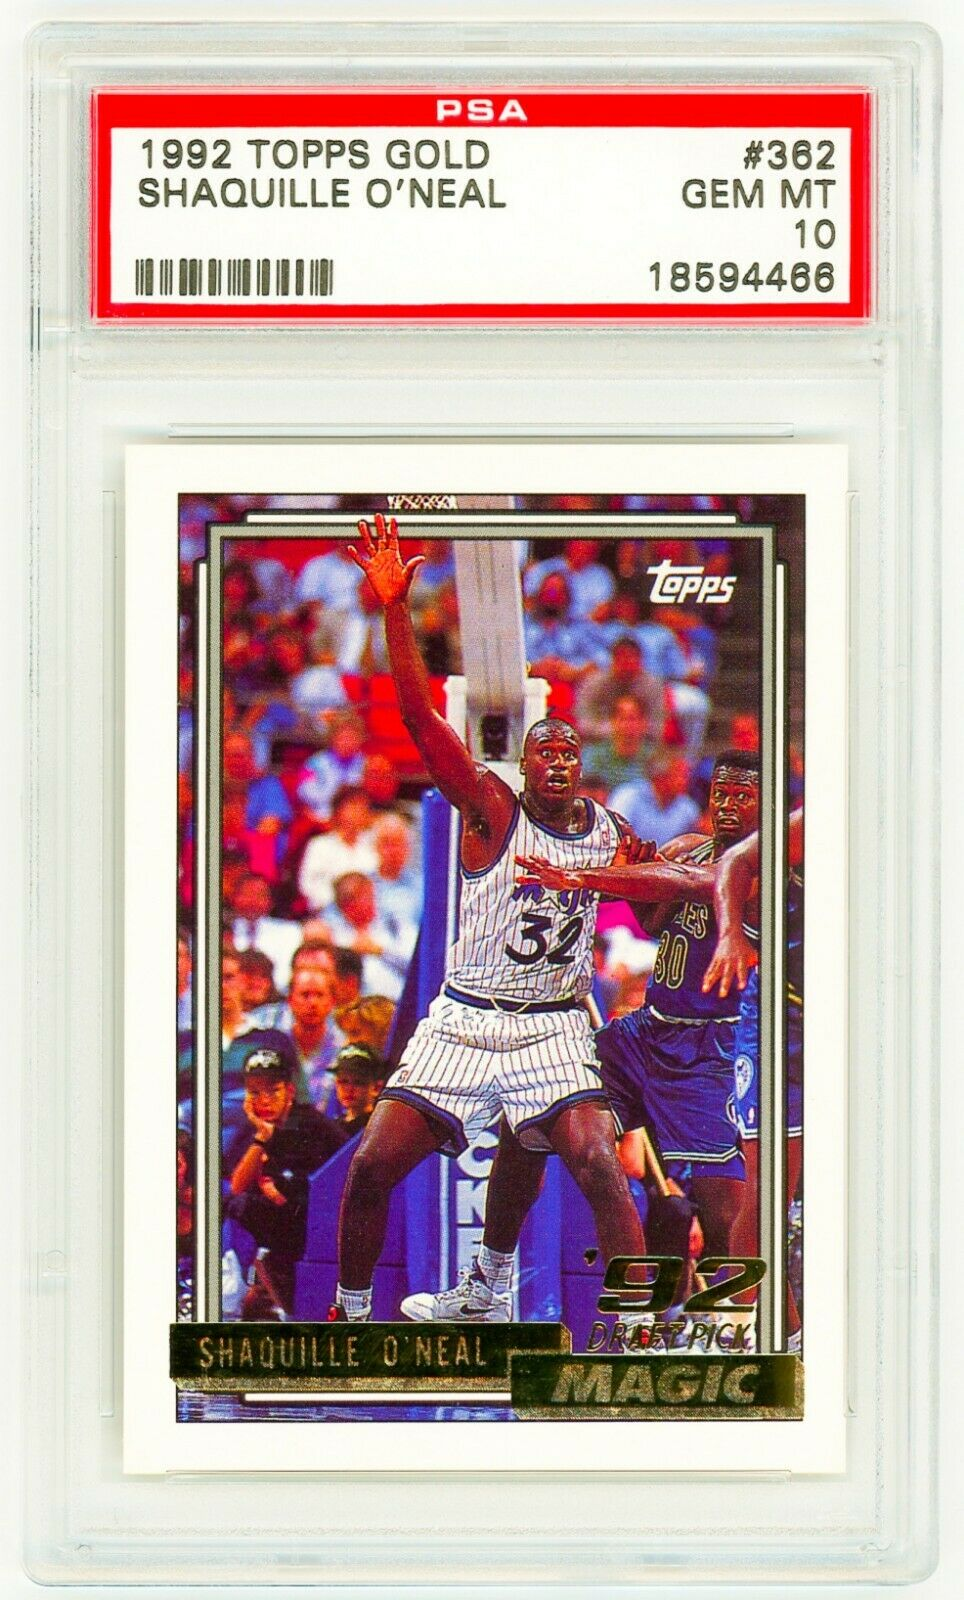 SHAQUILLE O'NEAL 1992 Topps GOLD #362 PSA 10 GEM MINT ROOKIE CARD